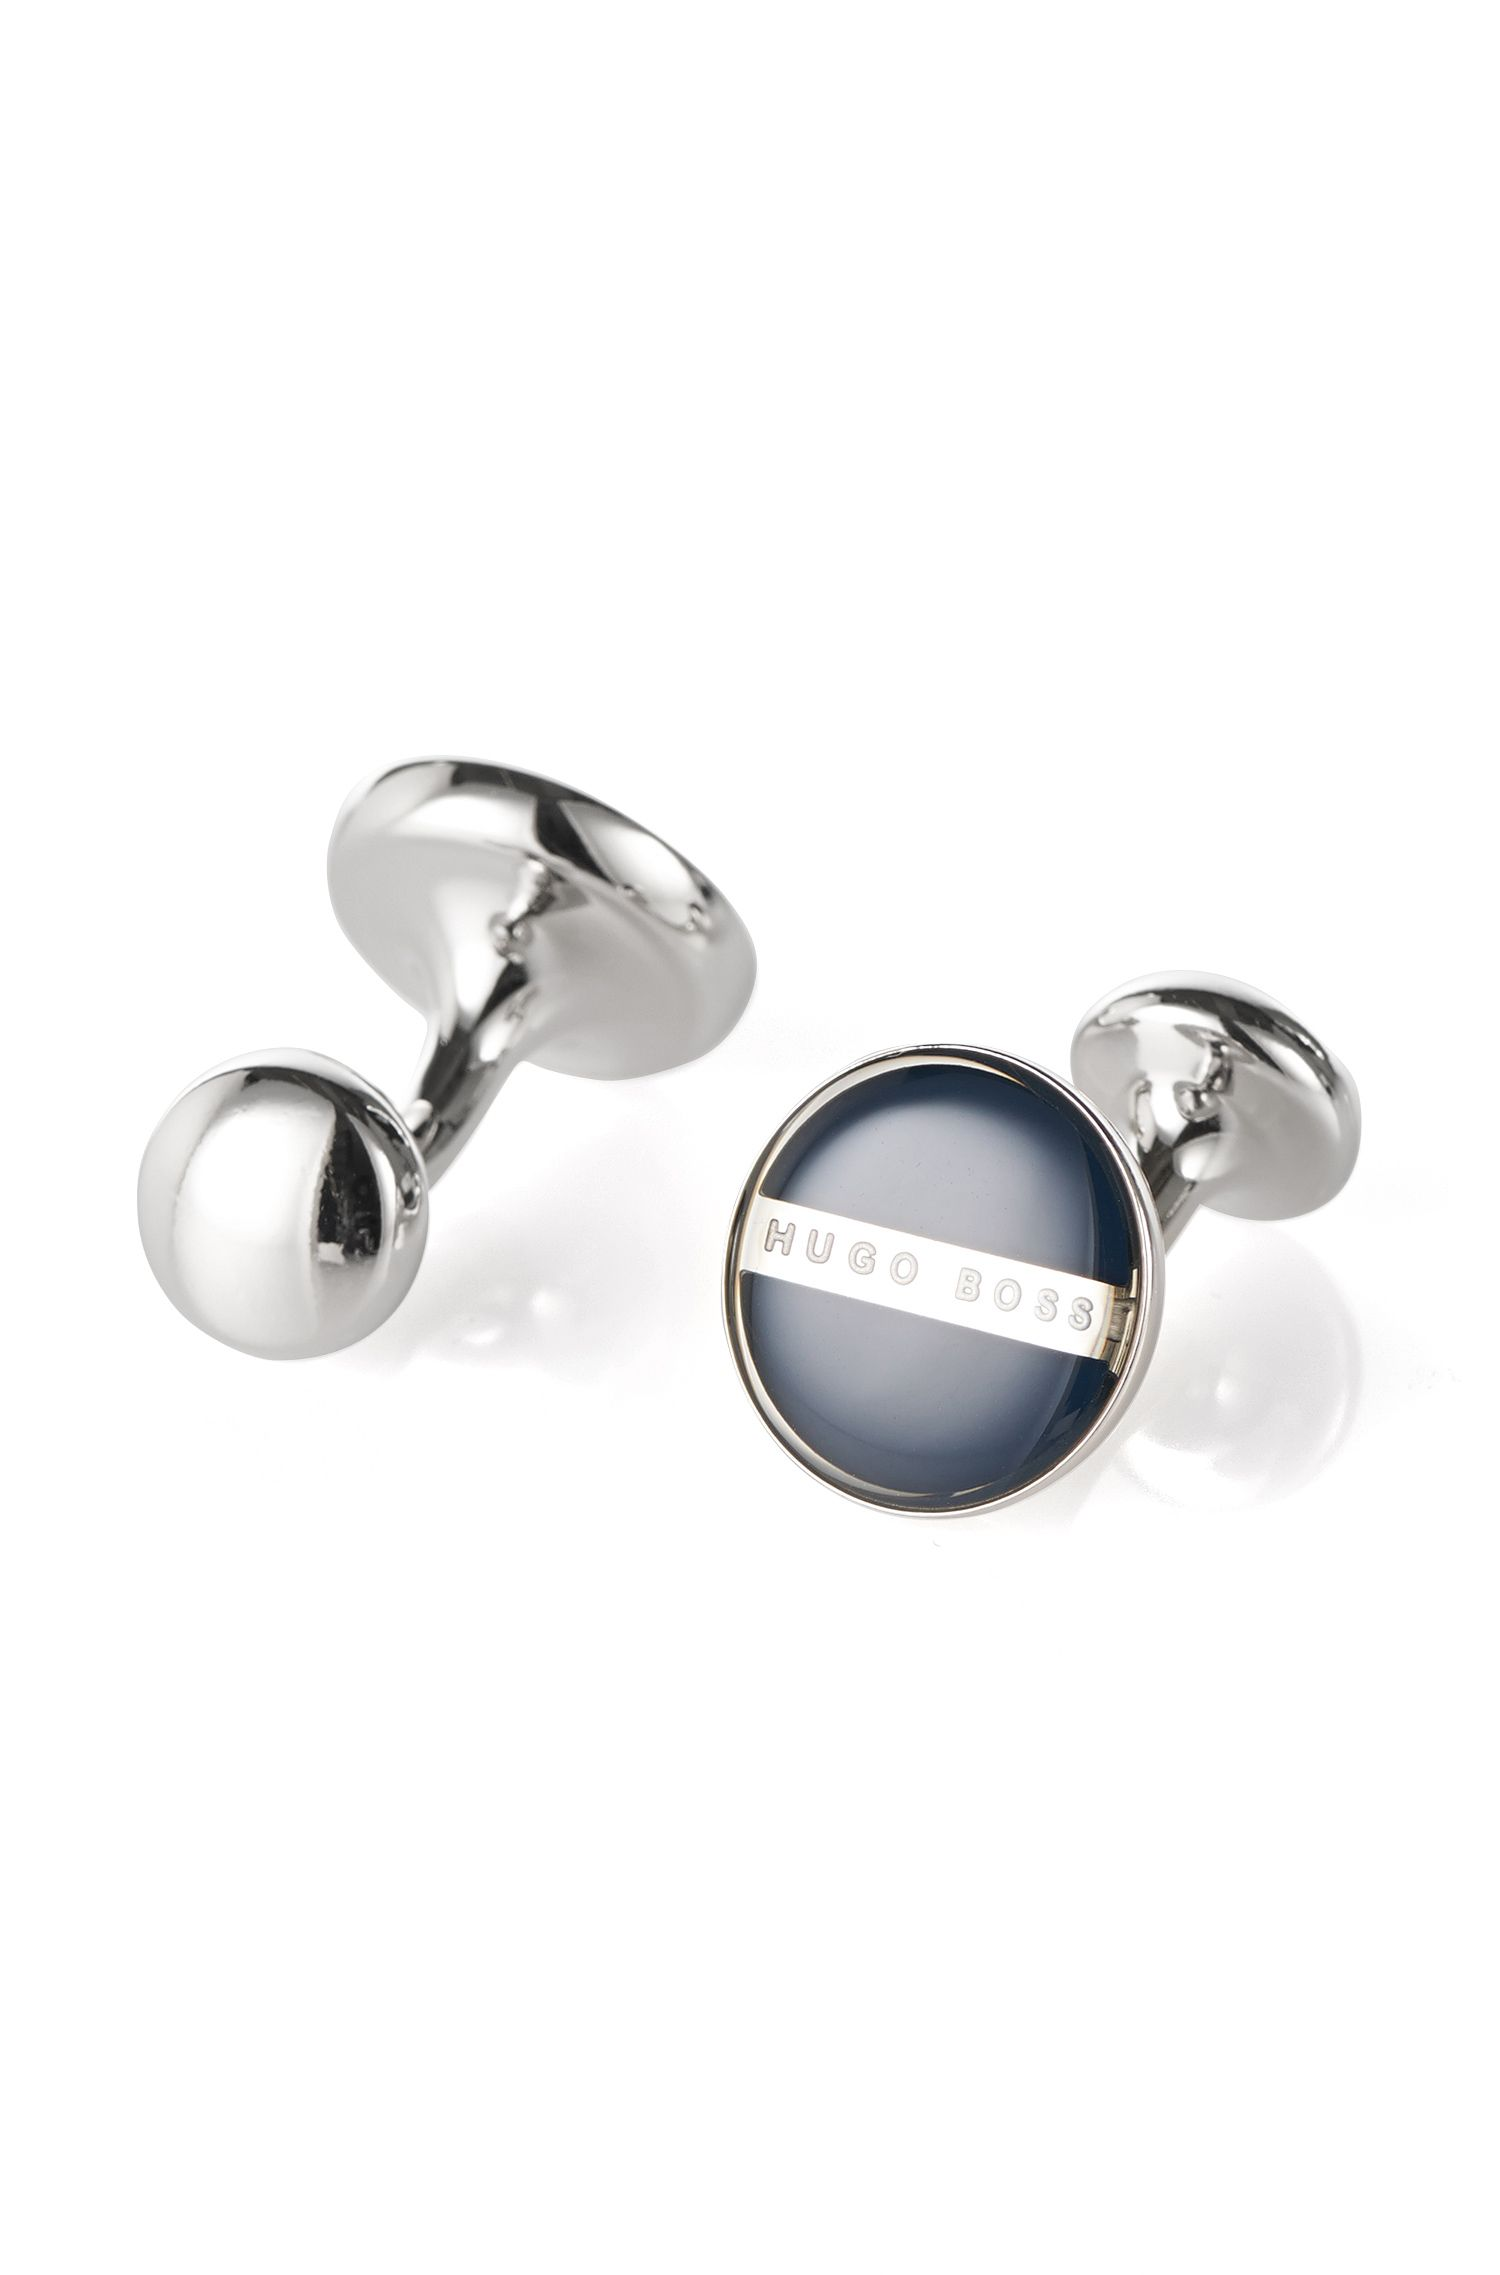 Brass and Enamel Round Cufflinks  | Norberto